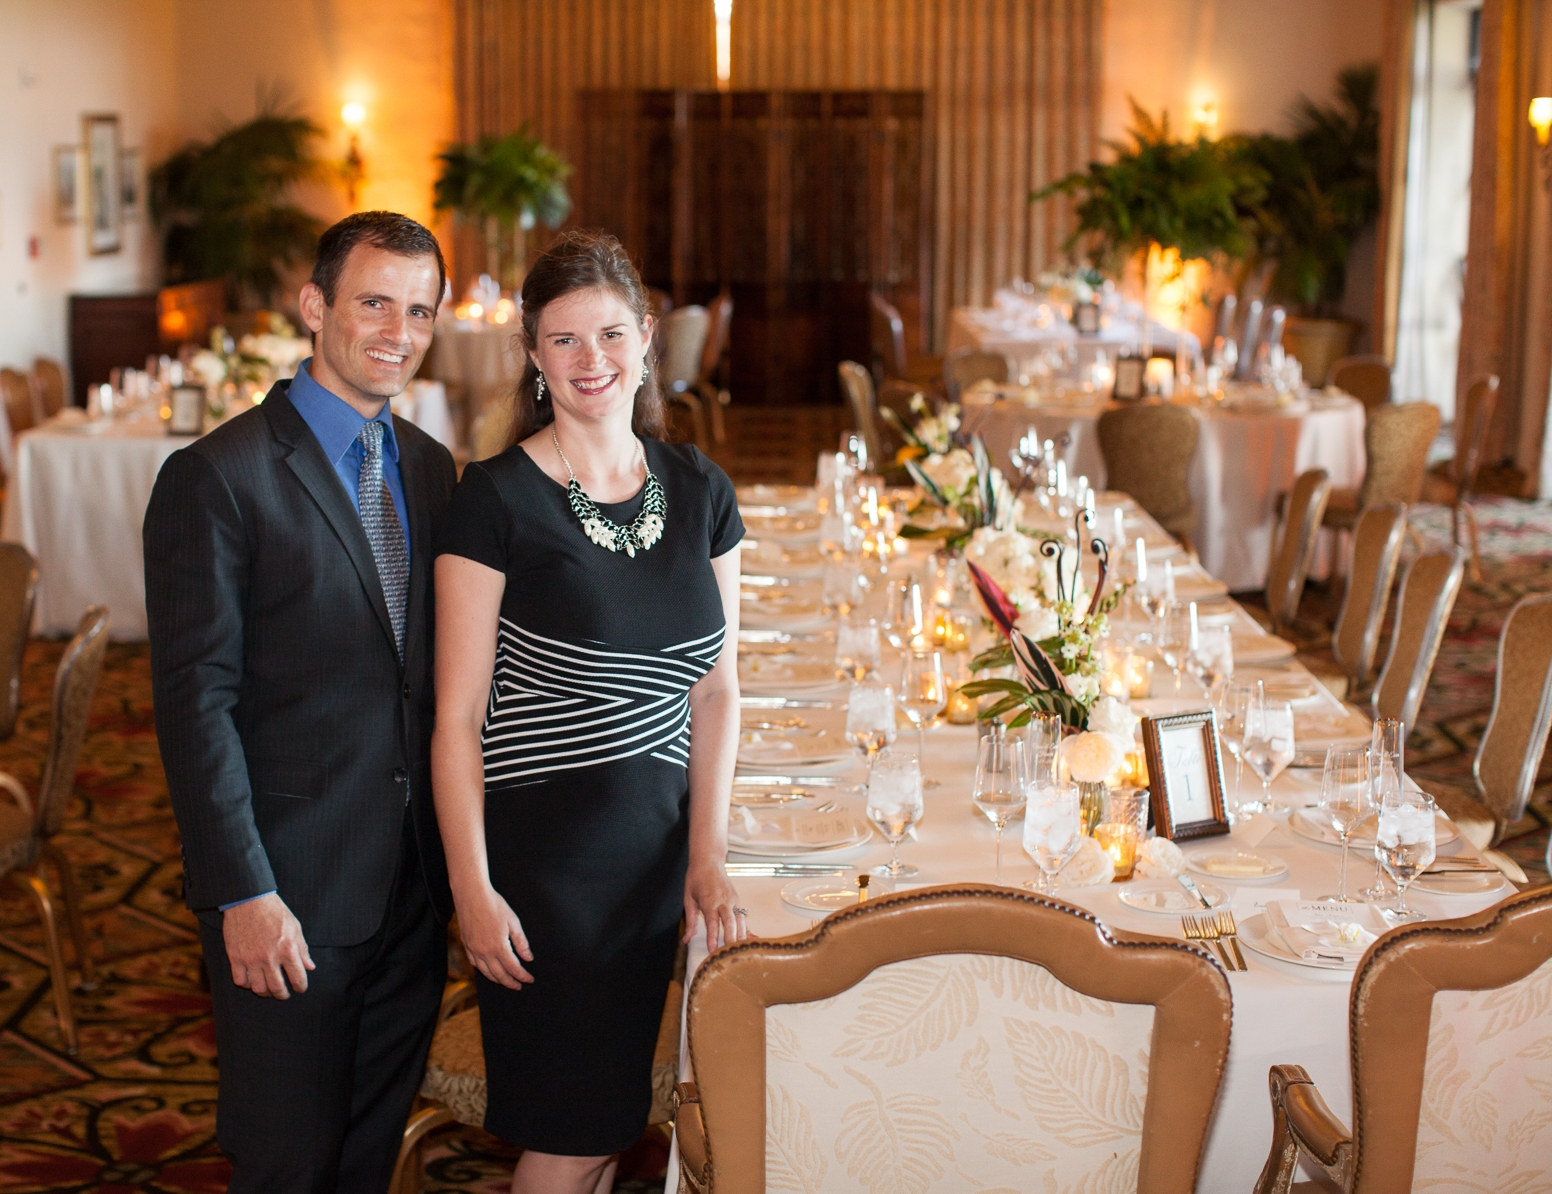 Adam-and-Katie-Schuette-KB-Events-Santa-Barbara-Wedding coordinator-event planner